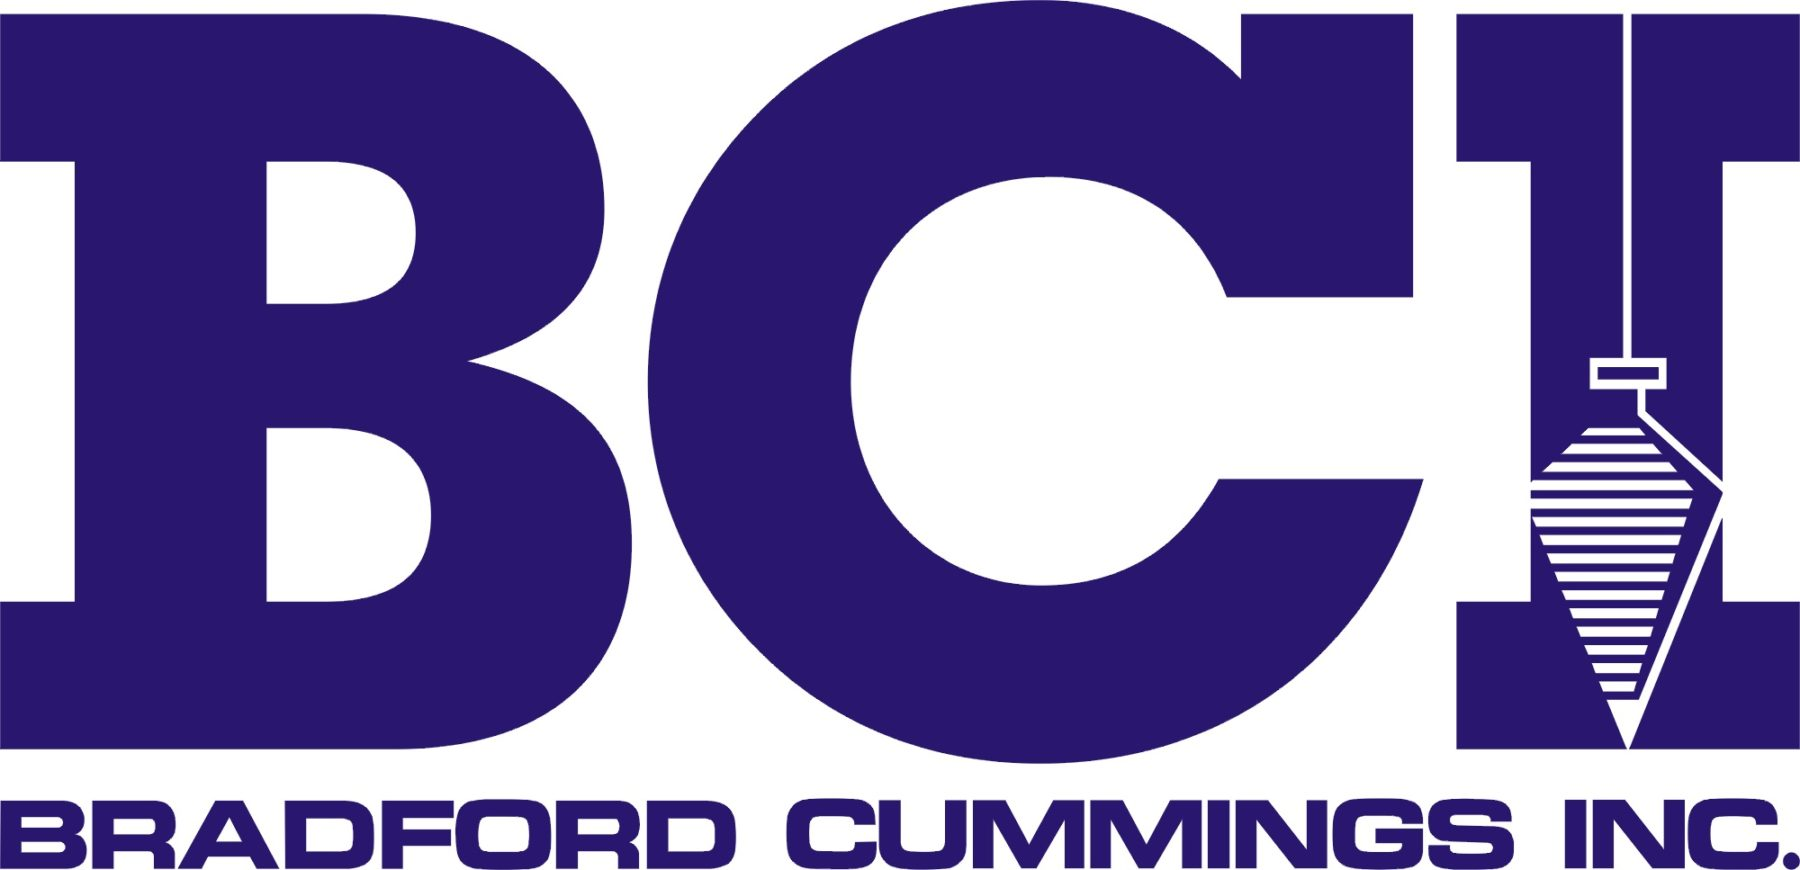 Bradford Cummings INC